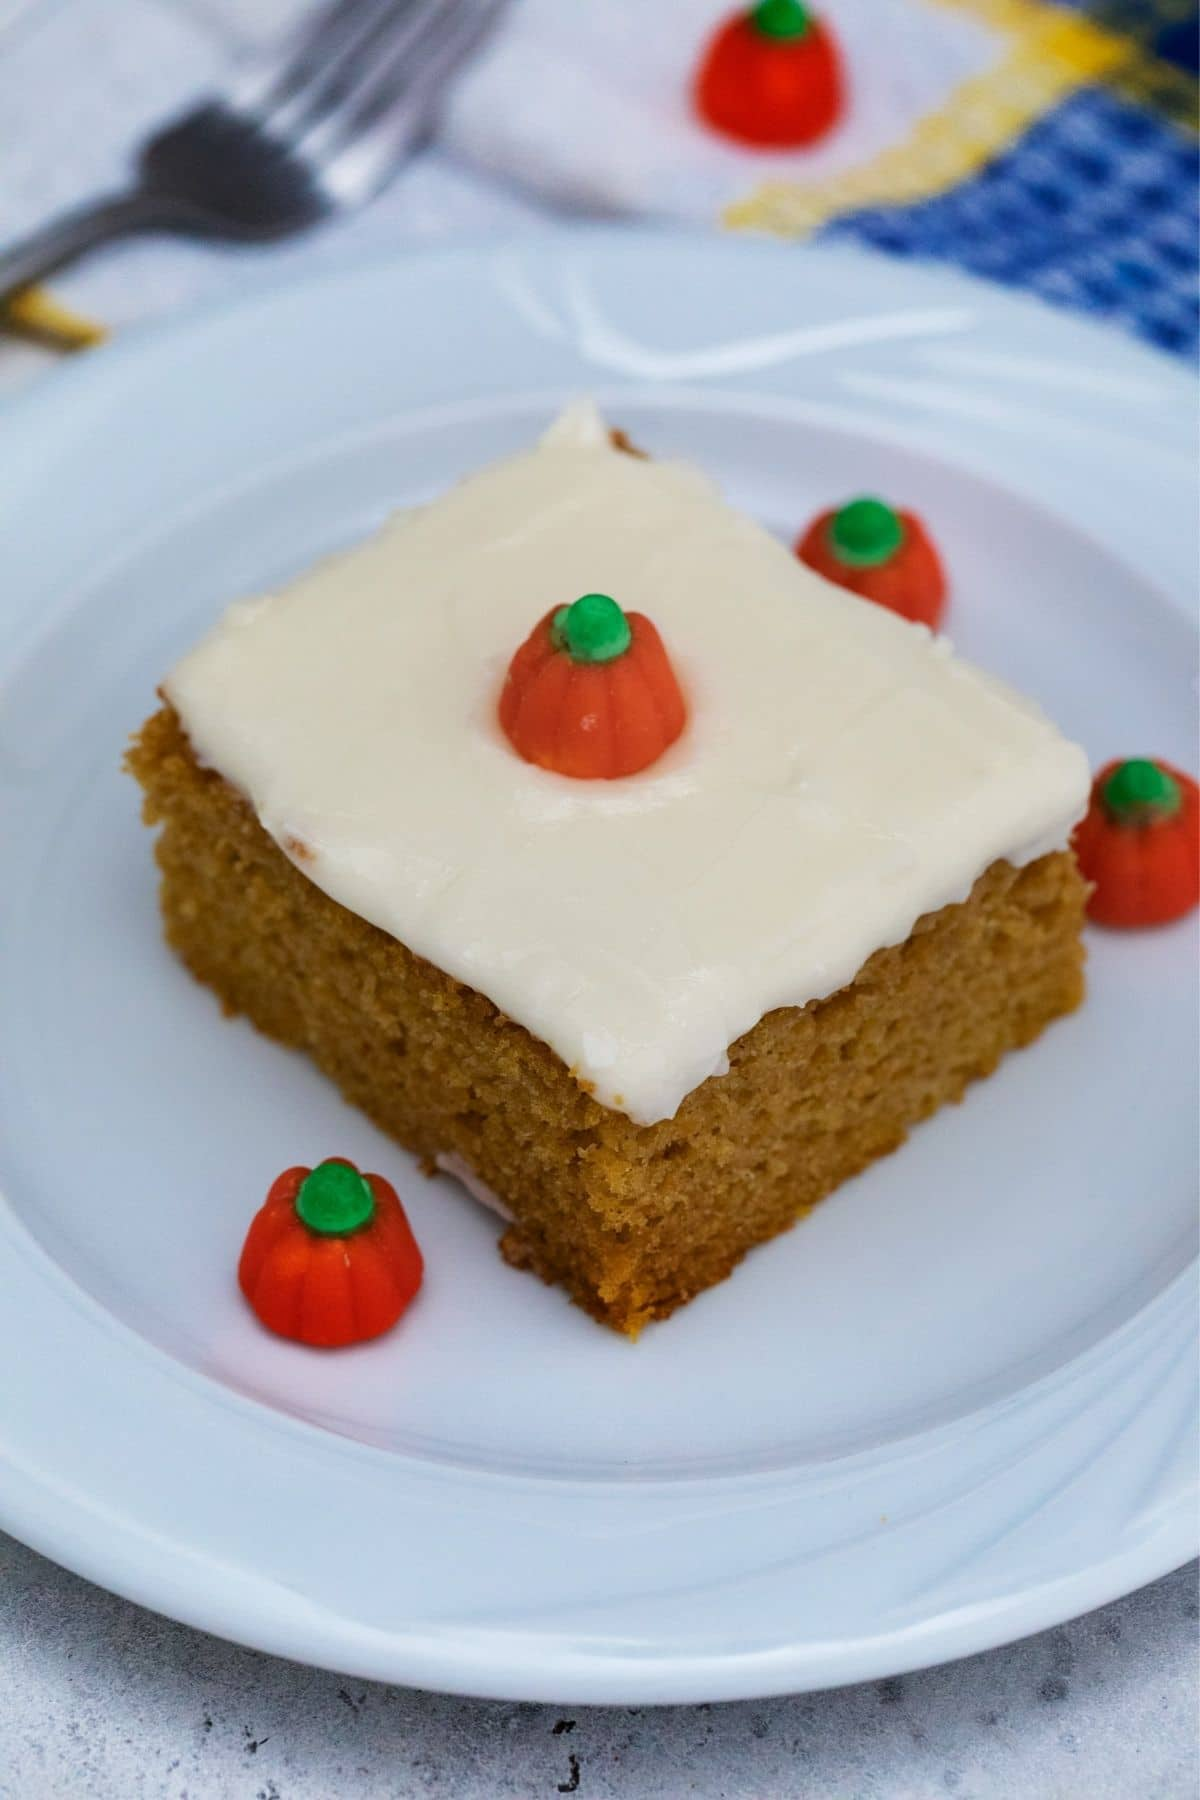 Square of cake on white saucer with pumpkin candy